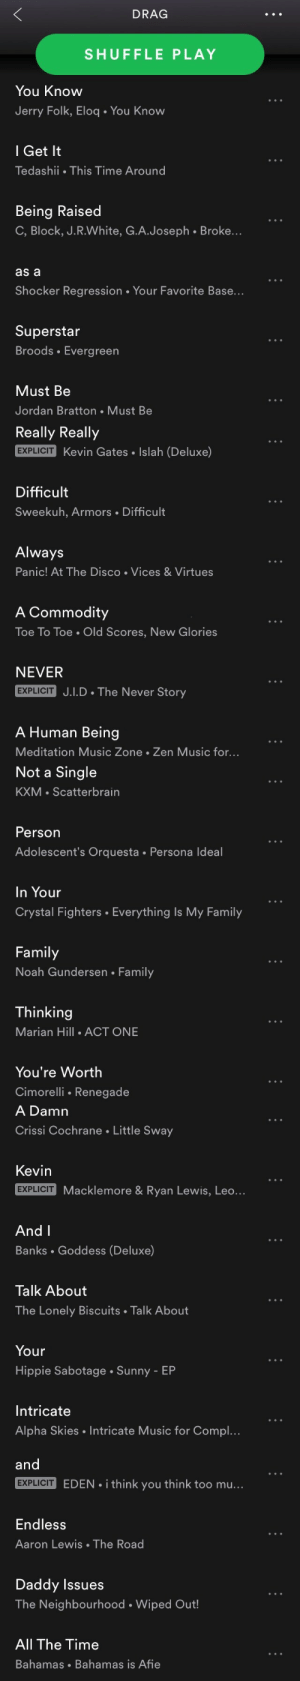 nwesninski:Made a playlist for an enemy: DRAG  SHUFFLE PLAY  You Know  Jerry Folk, Eloq. You Know  l Get It  Tedashii This Time Around  Being Raised  C, Block, J.R.White, G.A.Joseph . Broke...  as a  Shocker Regression. Your Favorite Base...  Superstar  Broods Evergreen  Must Be  Jordan Bratton Must Be   Really Really  EXPLICIT Kevin Gates. Islah (Deluxe)  Difficult  Sweekuh, Armors Difficult  Always  Panic! At The Disco Vices& Virtues  A Commodity  To Toe. Old Scores, New Glories  NEVER  EXPLICIT J.I.D The Never Story  A Human Being  Meditation Music Zone Zen Music for...   Not a Single  KXM Scatterbrain  Person  Adolescent's Orquesta Persona Ideal  In Your  Crystal Fighters . Everything Is My Family  Family  Noah Gundersen Family  Thinking  Marian Hill .ACT ONE  You're Worth  Cimorelli Renegade   A Damn  Crissi Cochrane Little Sway  Kevin  EXPLICIT  Macklemore & Ryan Lewis, Leo.  And l  Banks Goddess (Deluxe)  Talk About  The Lonely Biscuits Talk About  Your  Hippie Sabotage Sunny - EP  Intricate  Alpha Skies Intricate Music for Compl..   and  EXPLICIT EDEN. i think you think too mu...  EXPLICIT  Endless  Aaron Lewis The Road  Daddy Issues  The Neighbourhood . Wiped Out!  All The Time  Bahamas Bahamas is Afie nwesninski:Made a playlist for an enemy